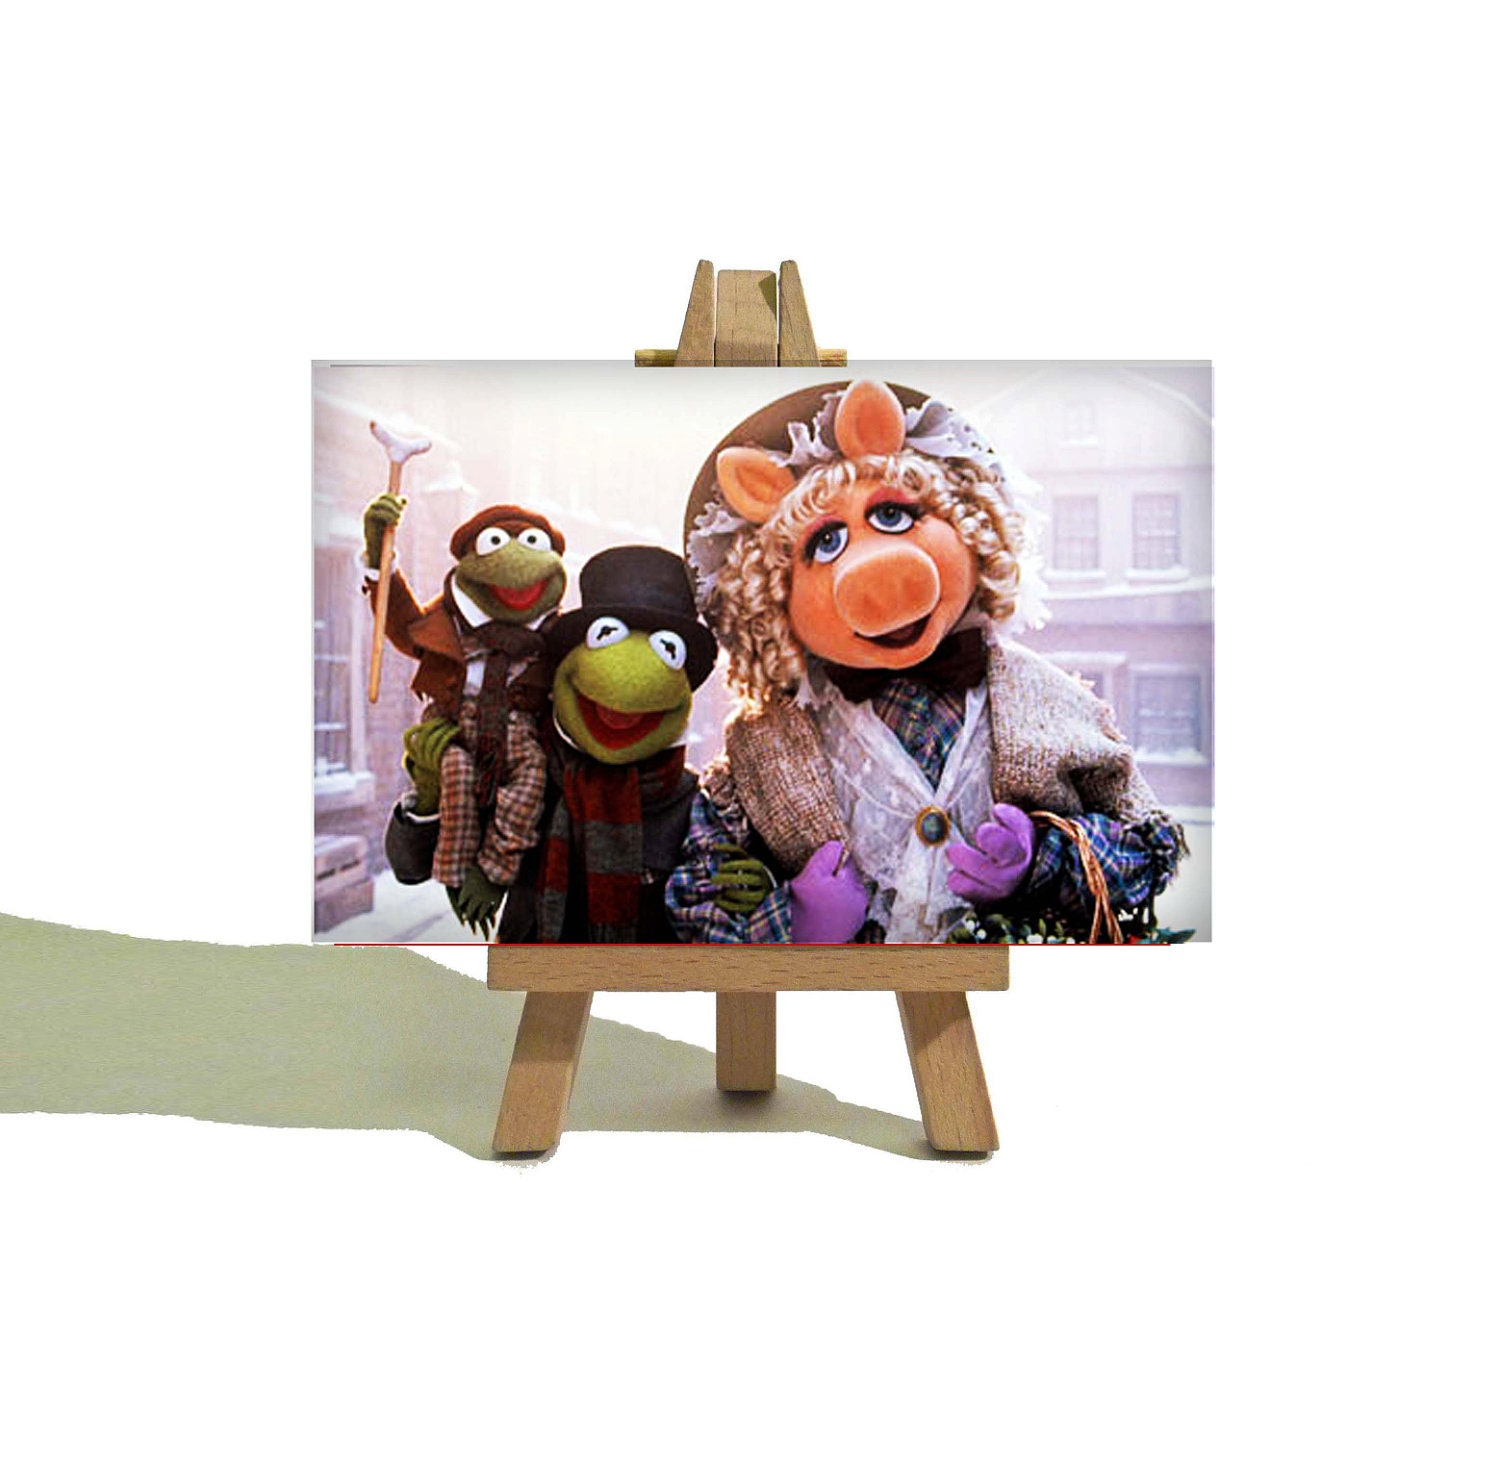 A Muppet Christmas Carol: KERMIT And Miss PIGGY The Muppets Christmas Carol Cute